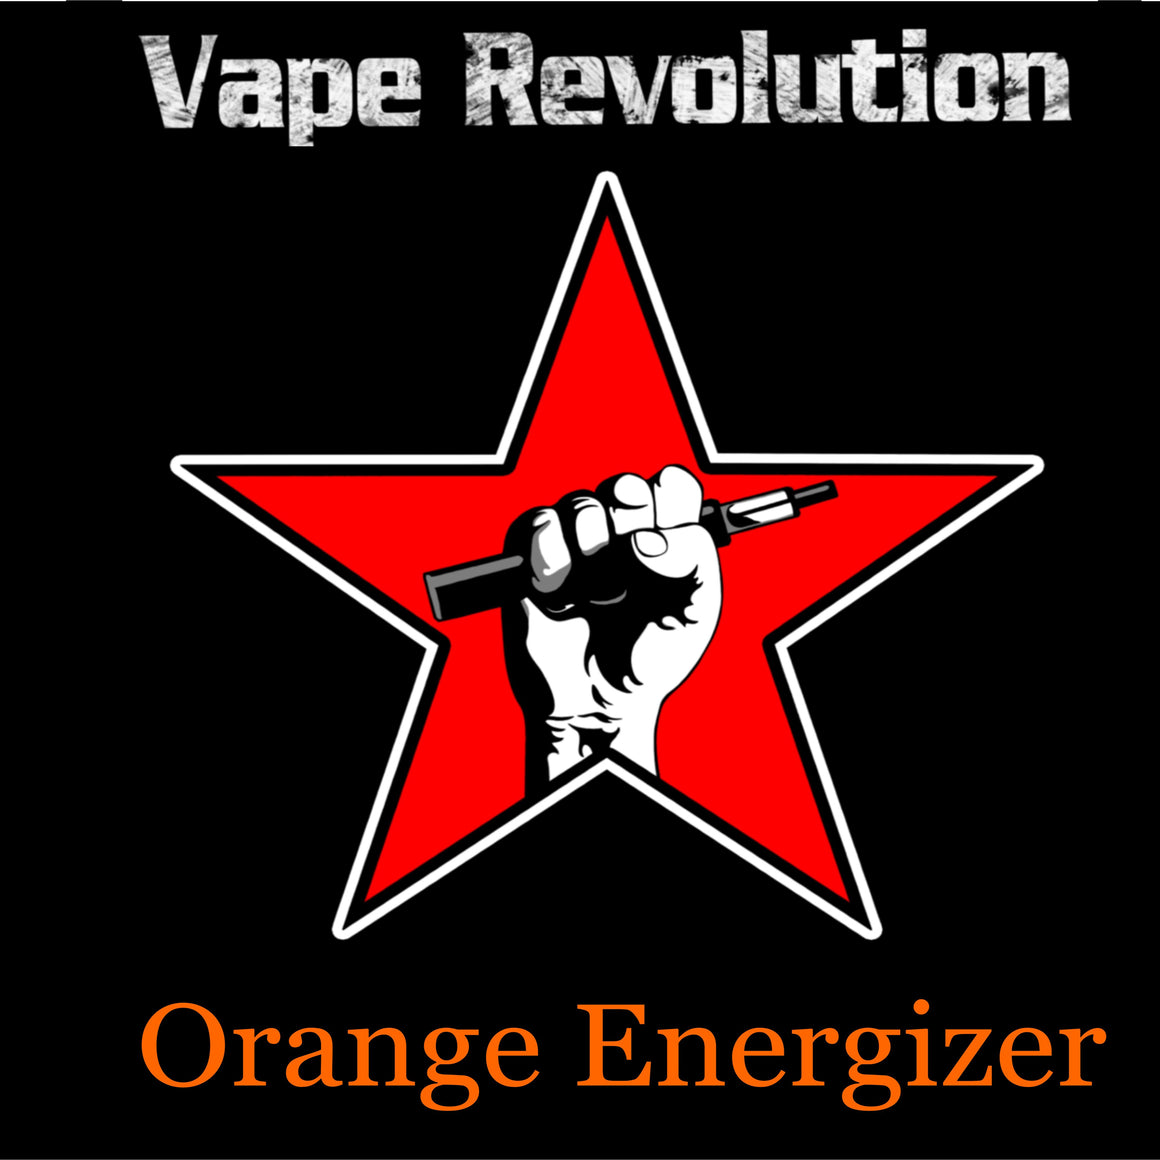 Orange Energizer